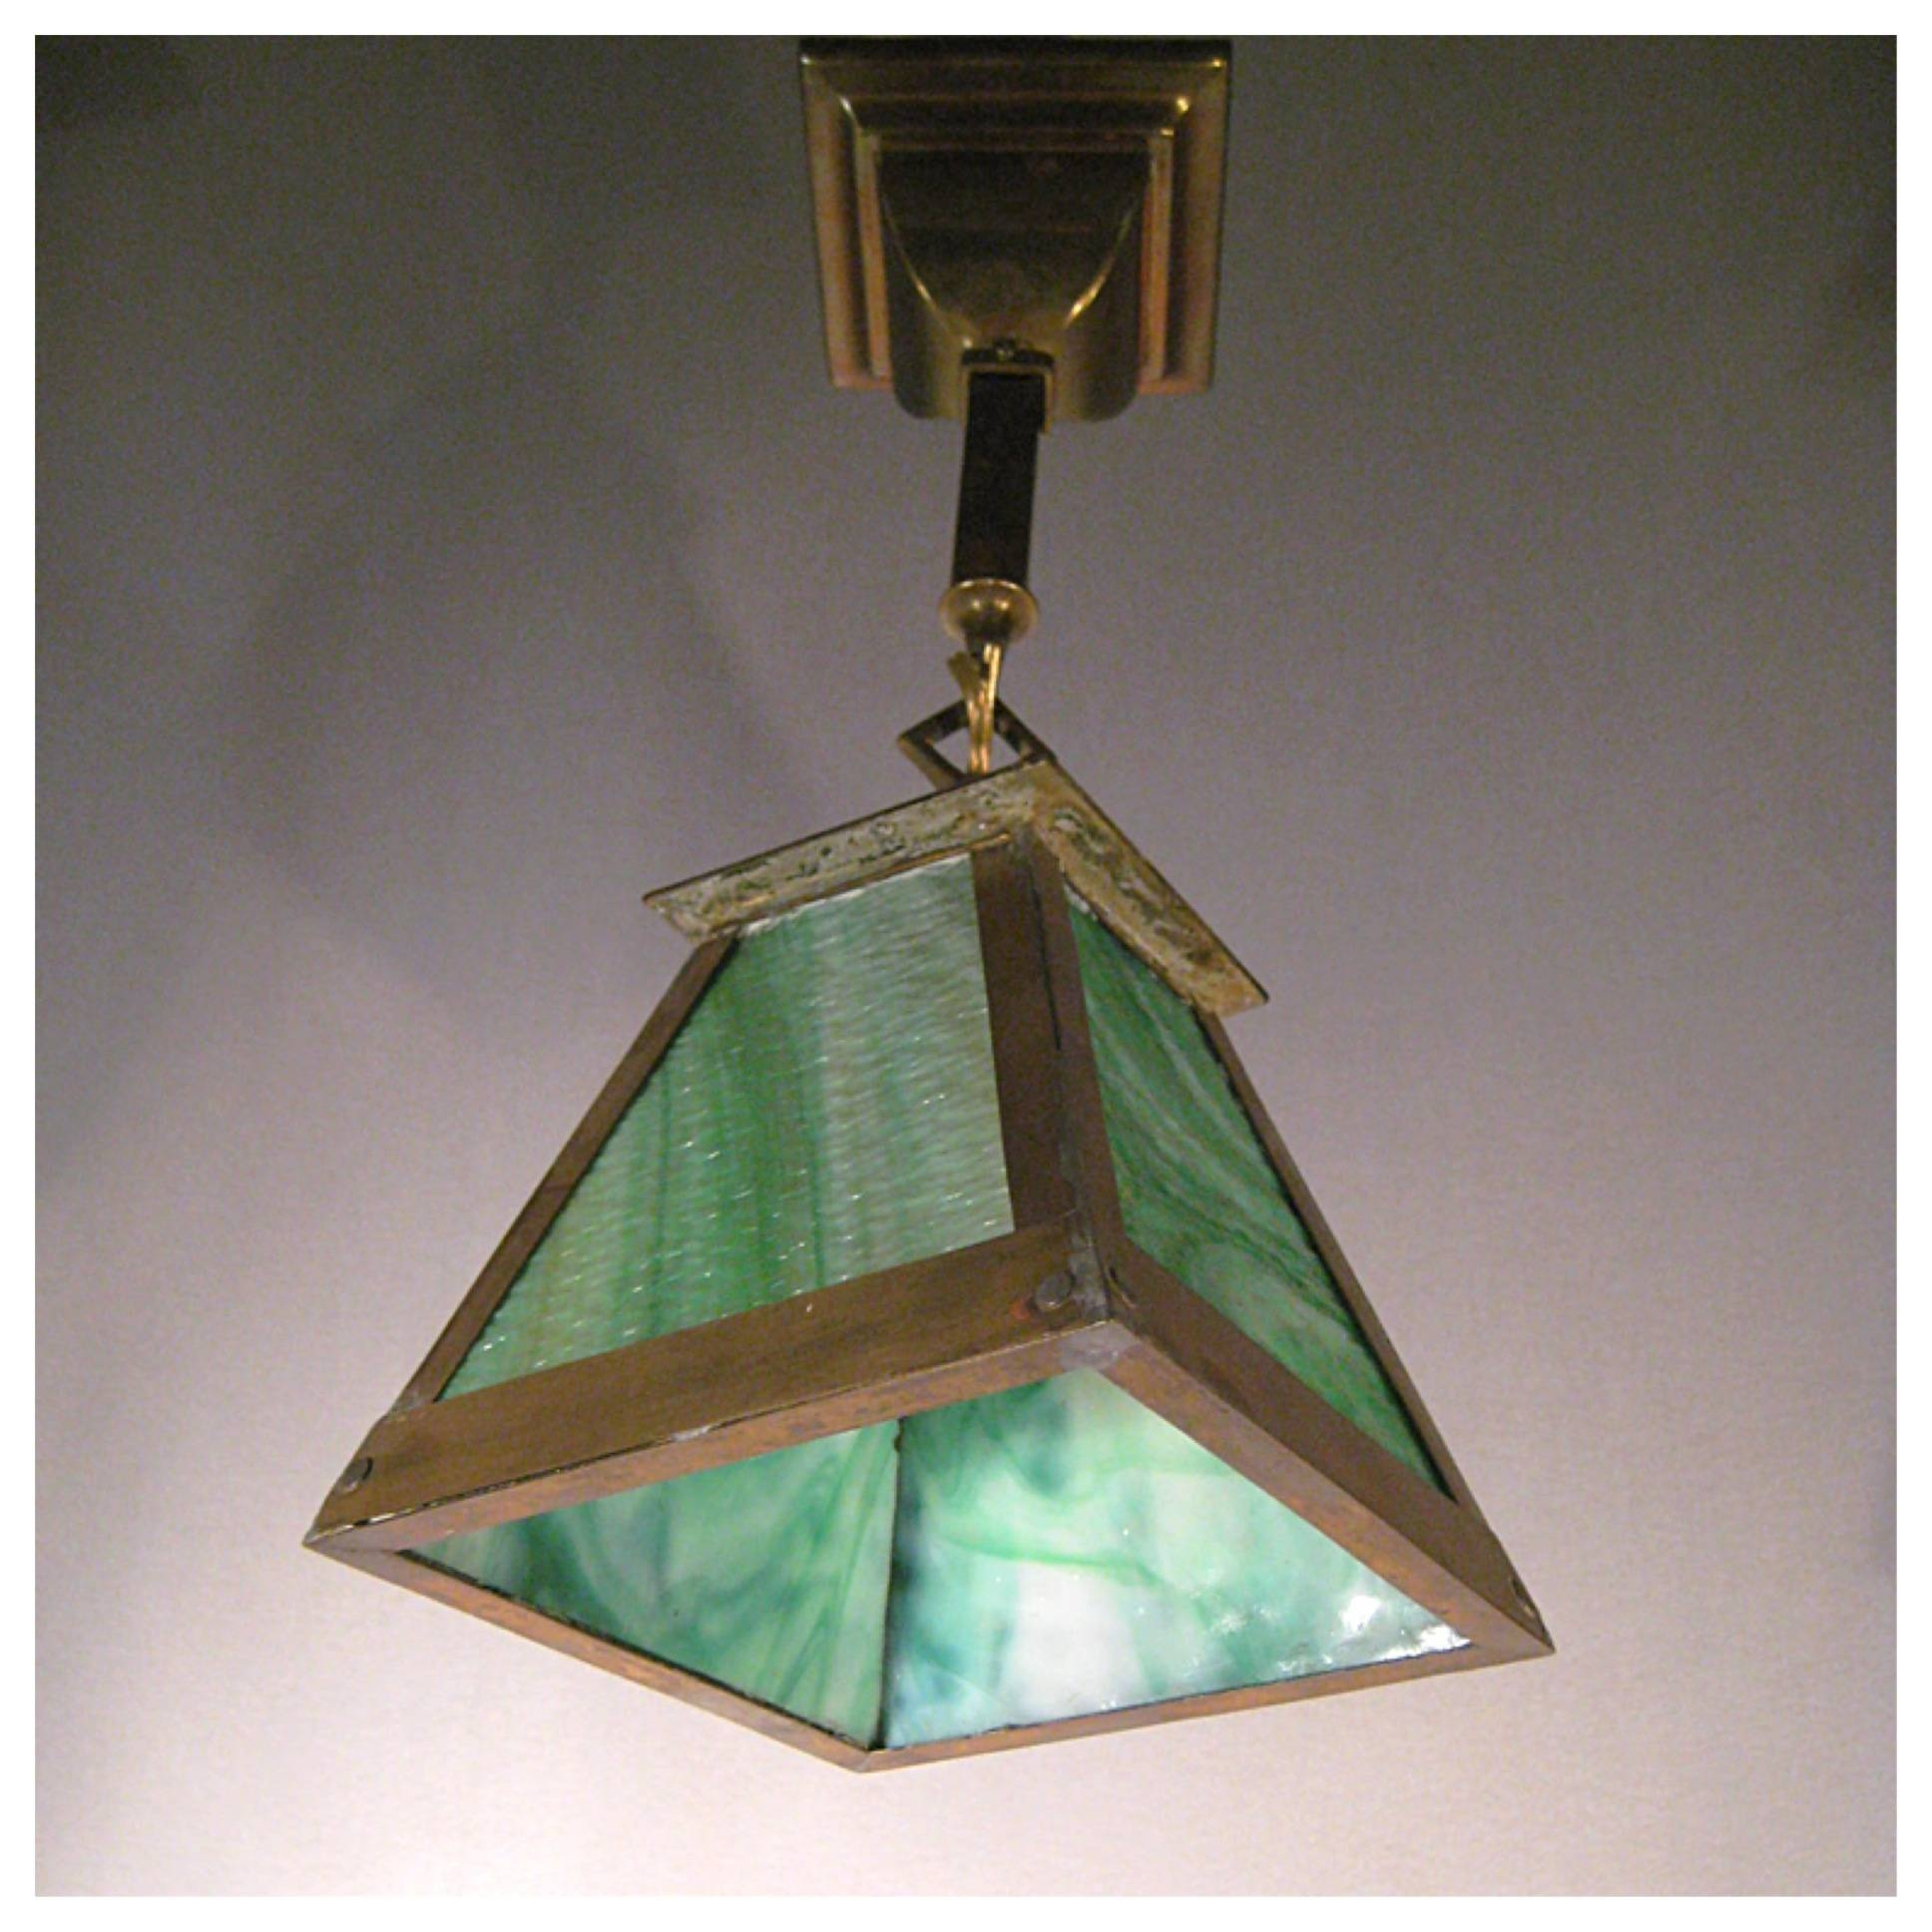 Lighting | Product Categories | Bogart, Bremmer & Bradley Antiques within Arts and Crafts Pendant Lights (Image 10 of 15)